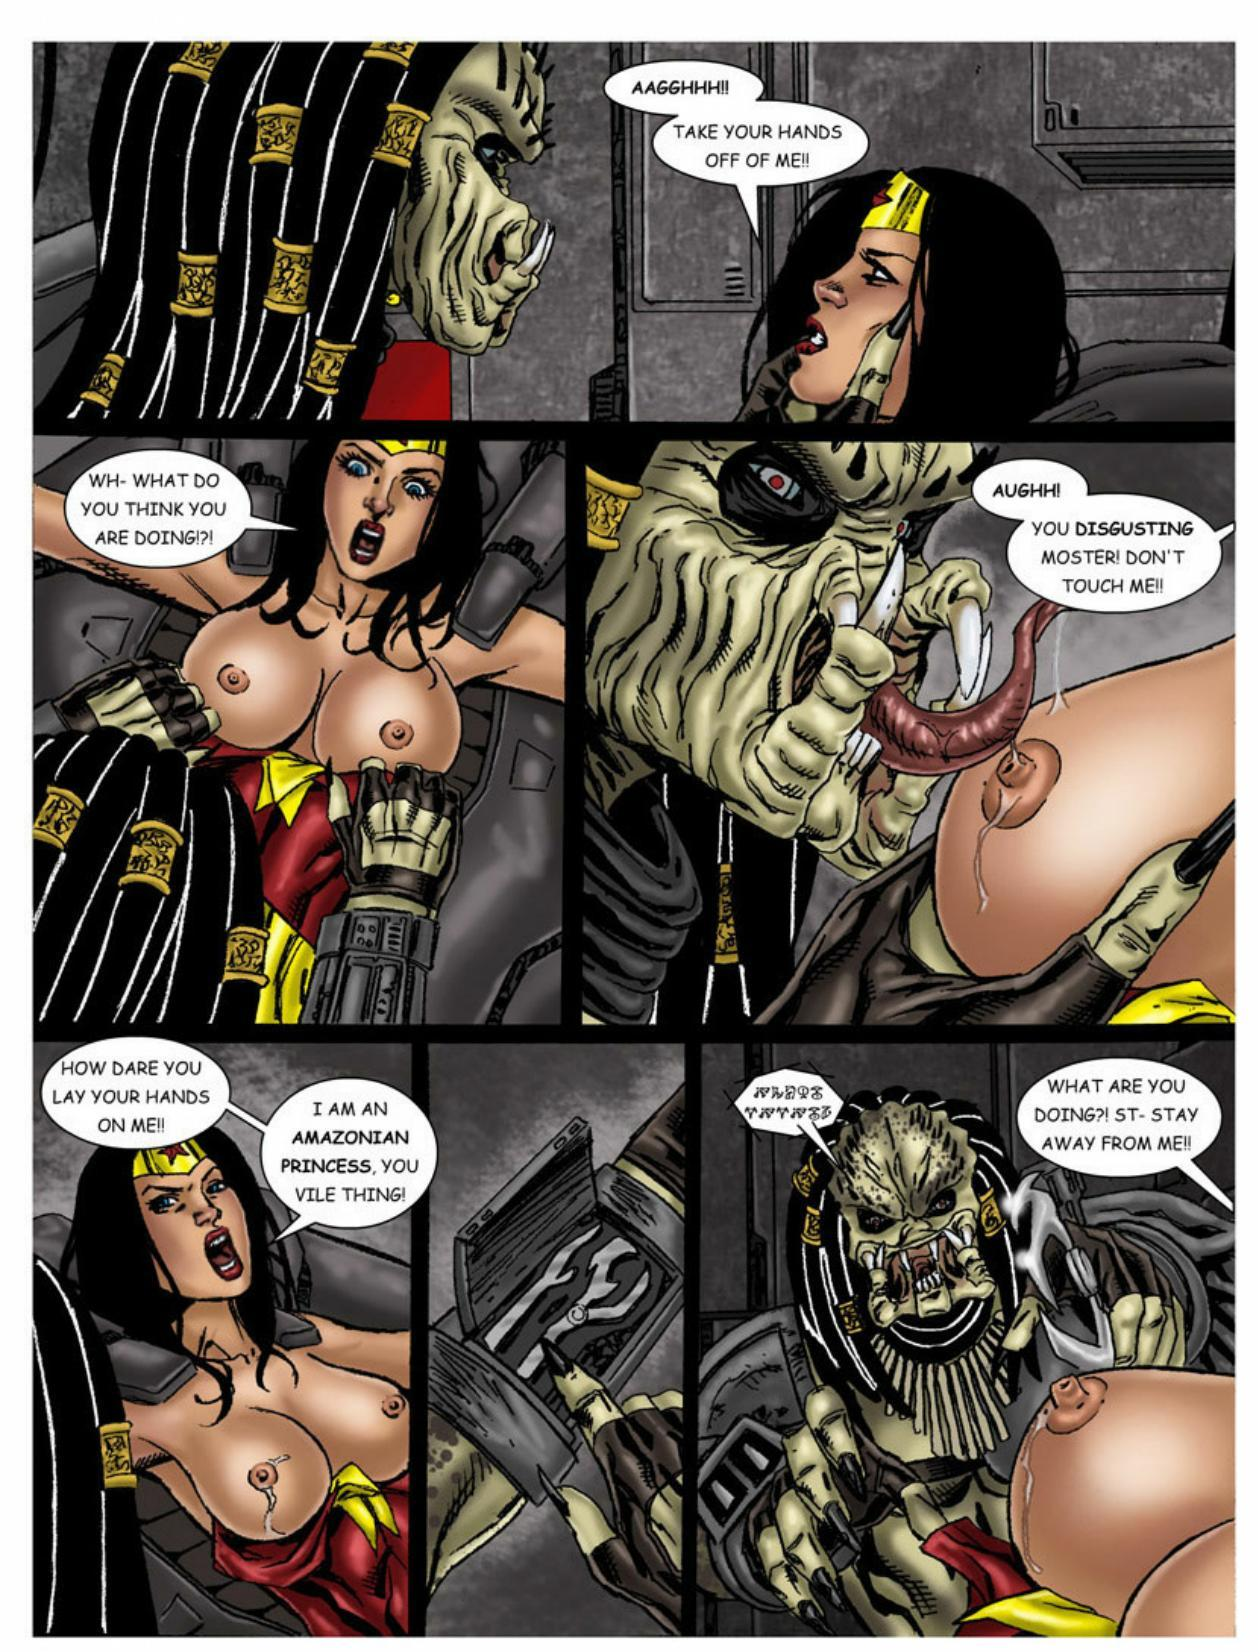 Wonder Woman vs Predator – Part 1-317 free sex comic